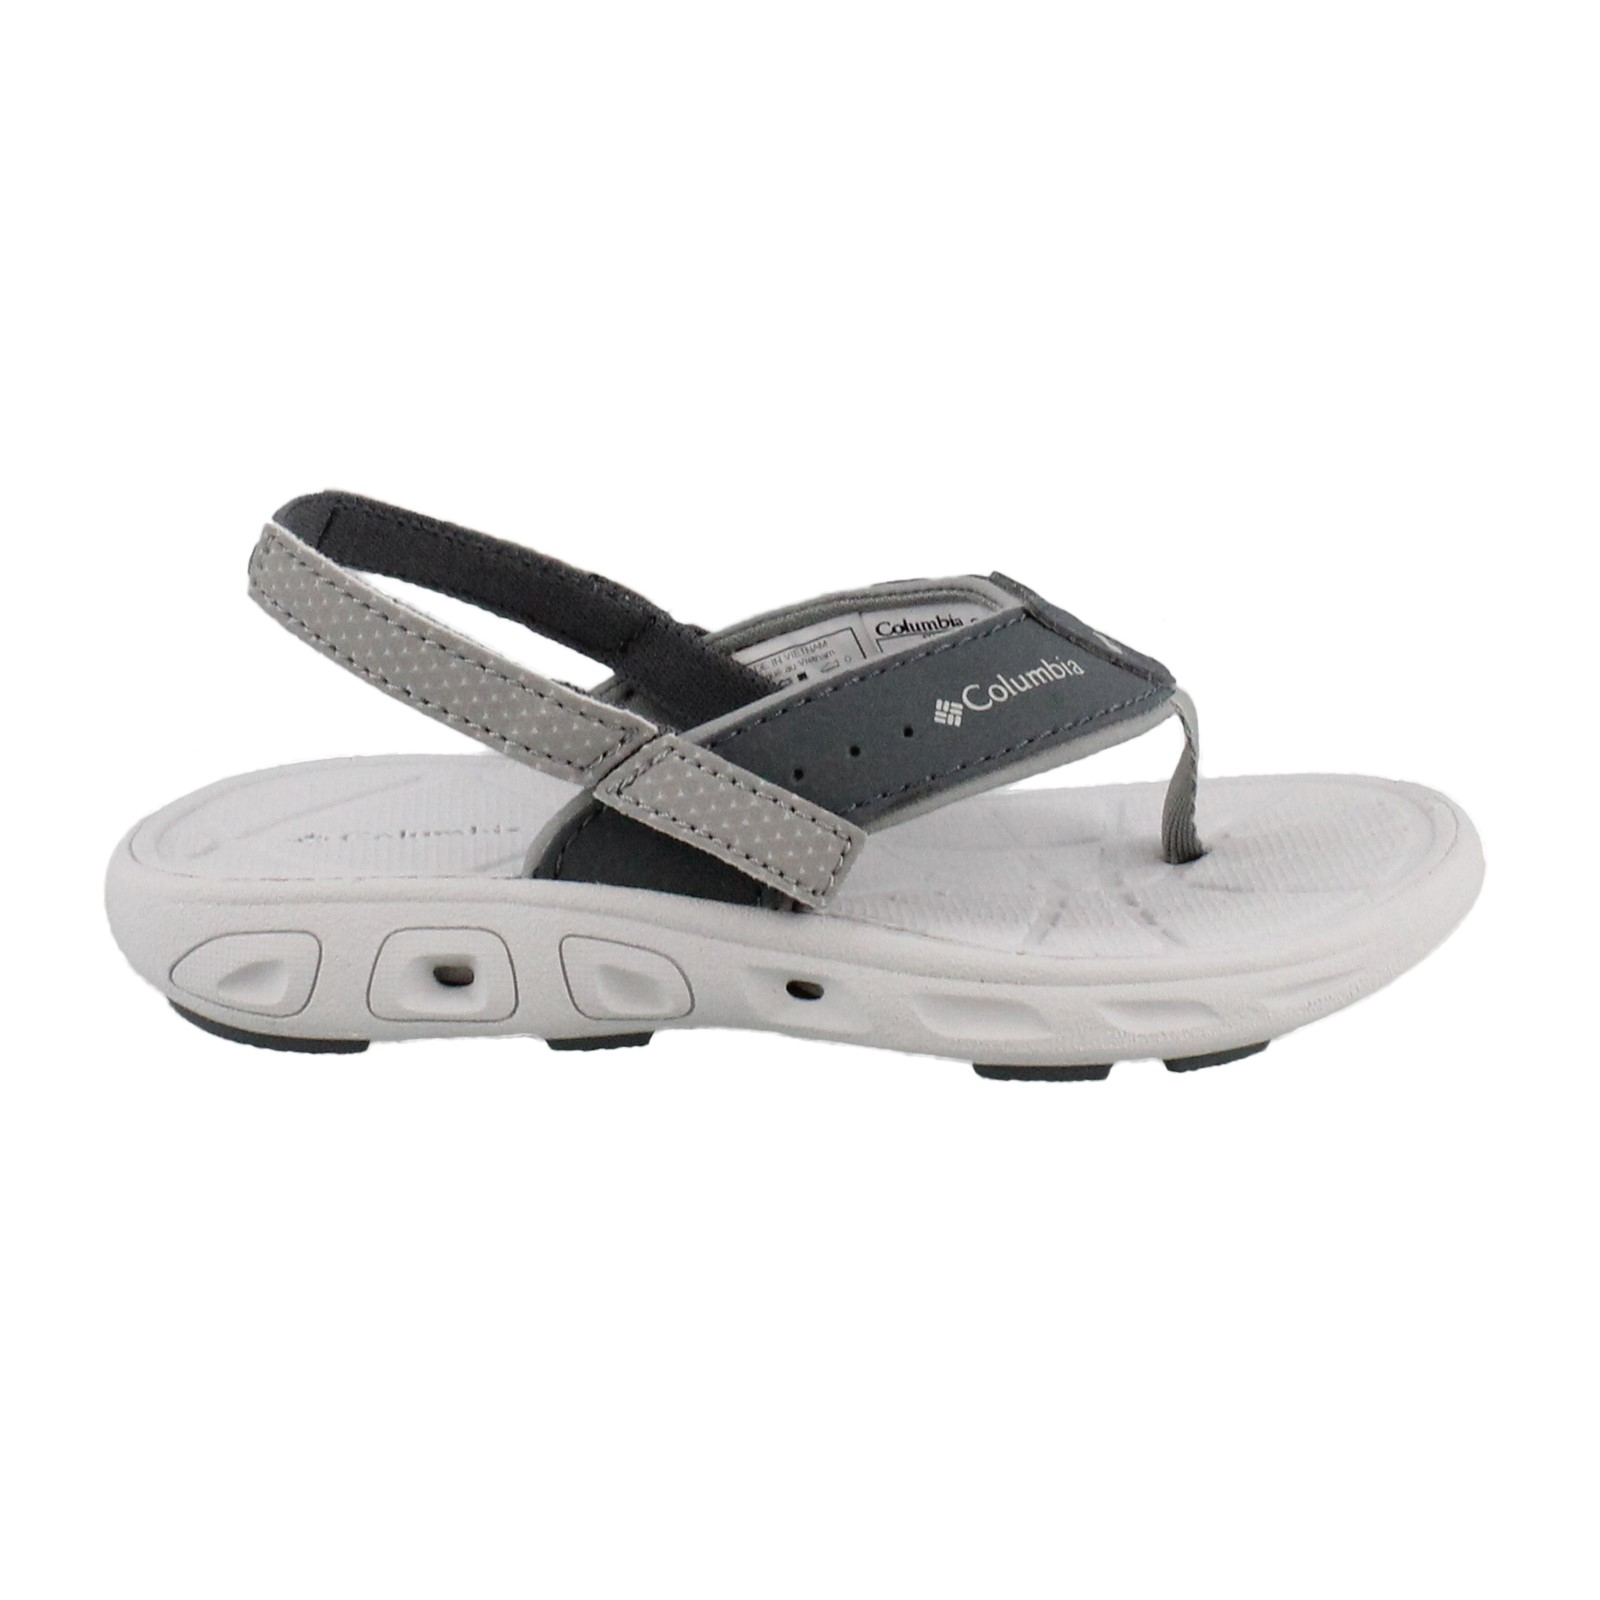 Boy's Columbia, Techsun Flip Thong Sandals